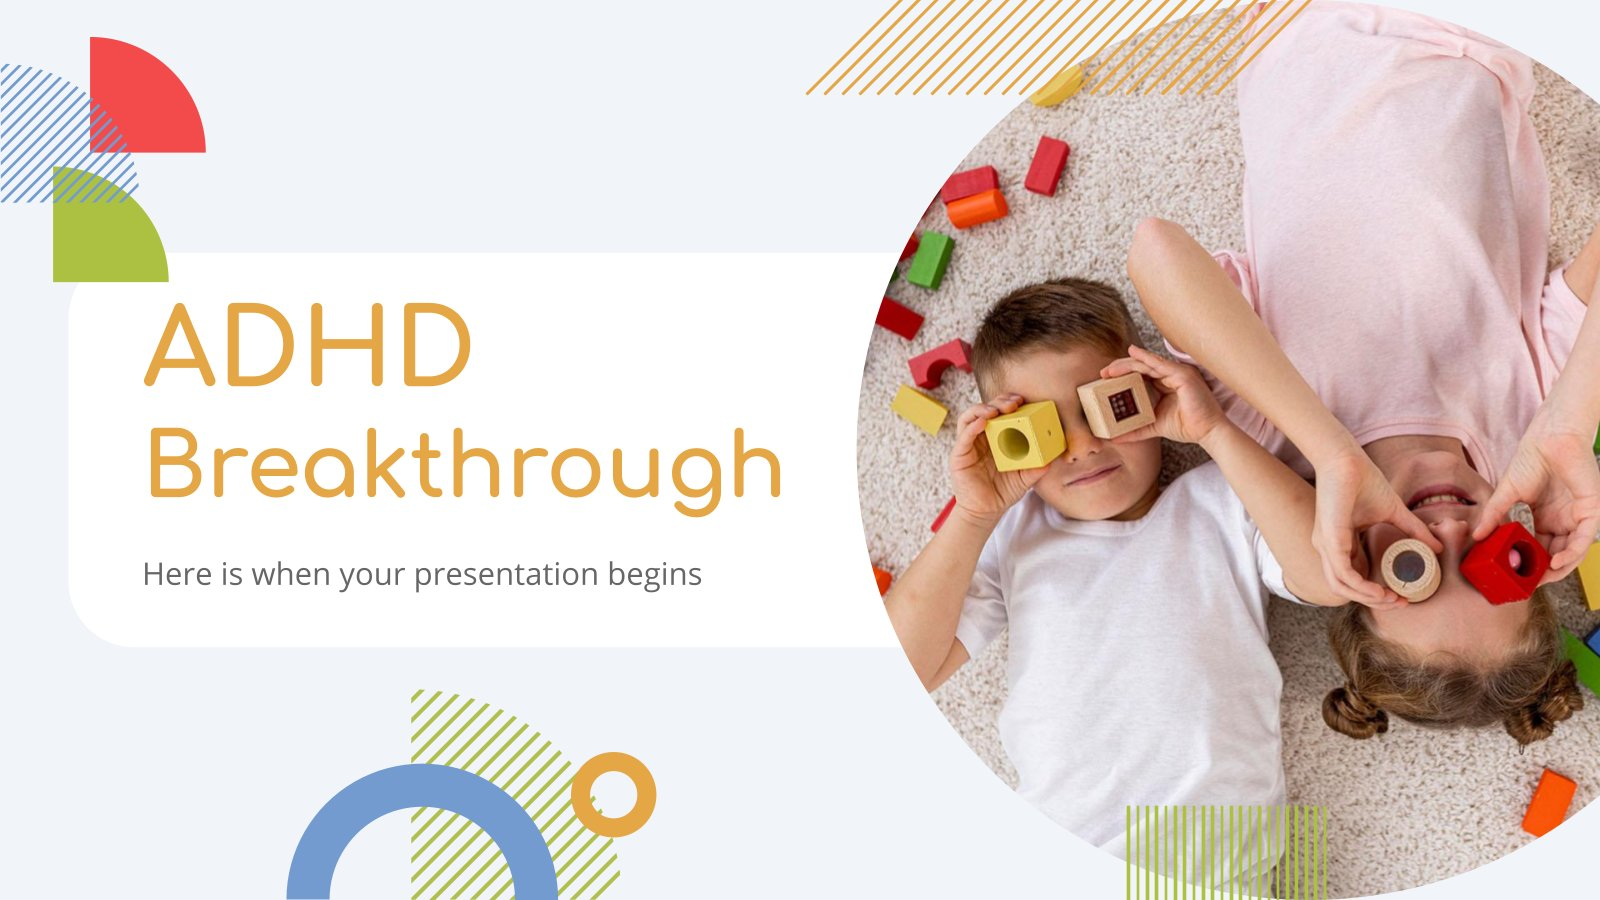 ADHD Breakthrough presentation template